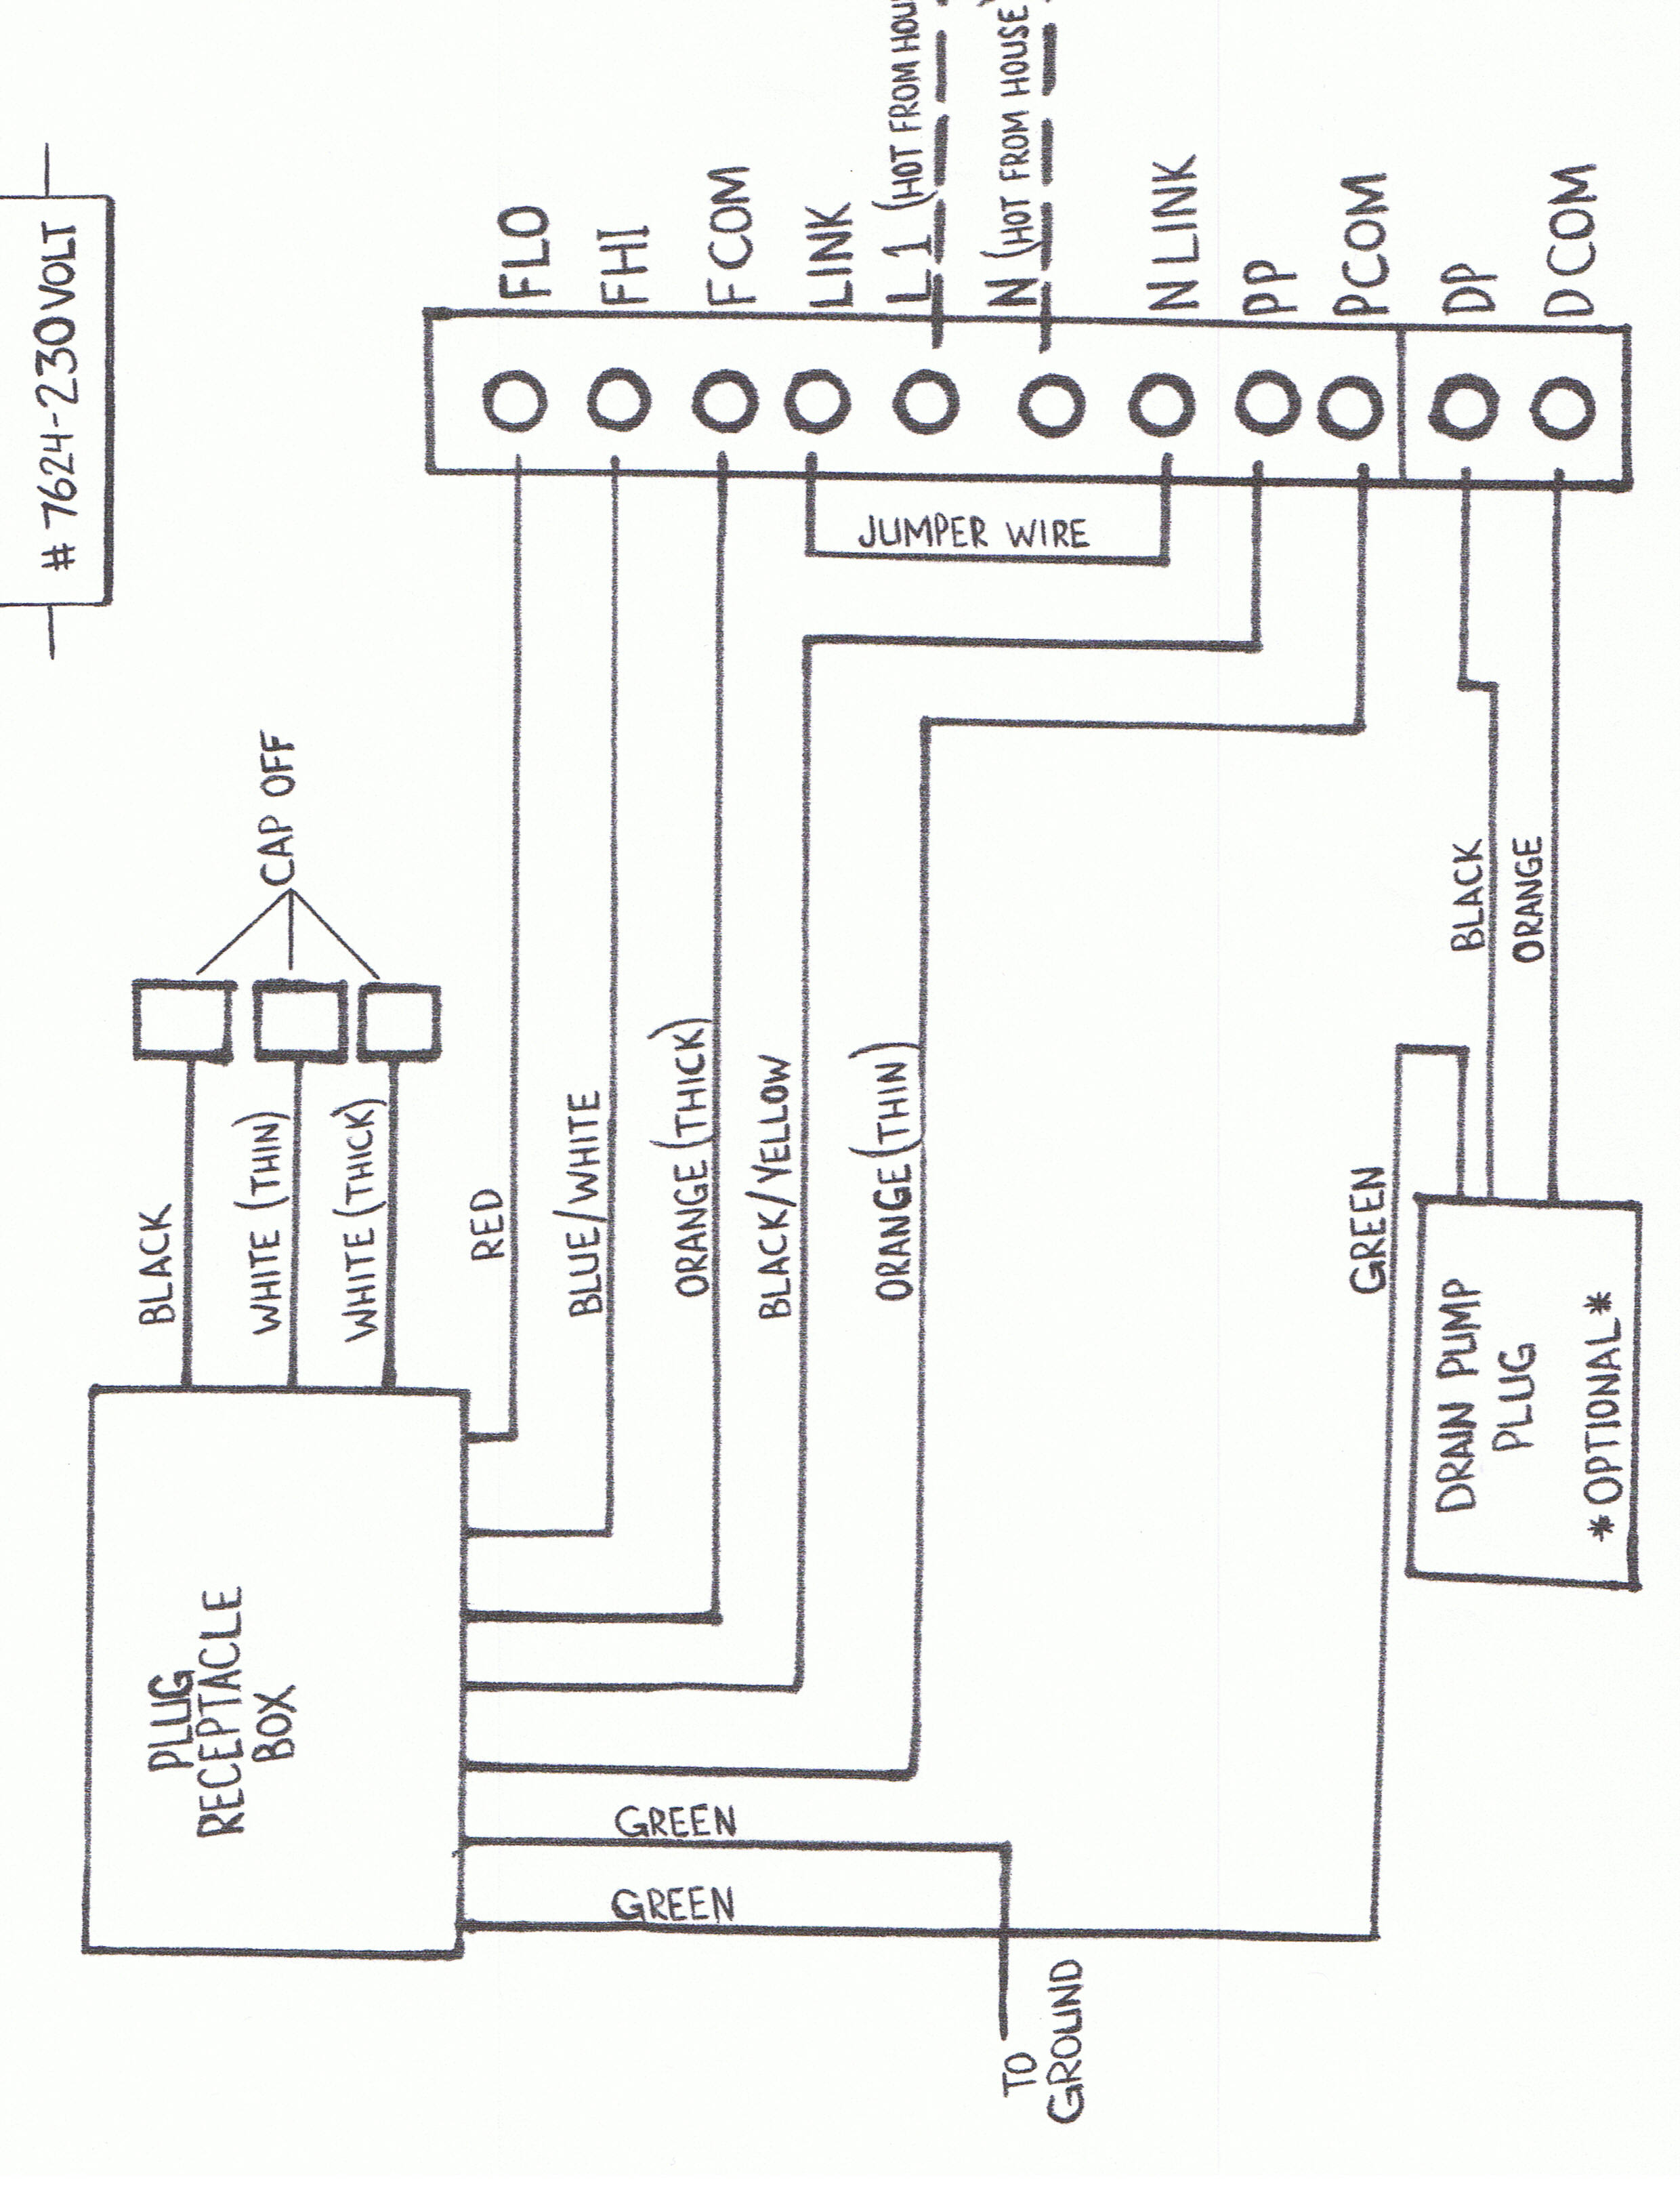 Utilitech Pump Wiring Diagram